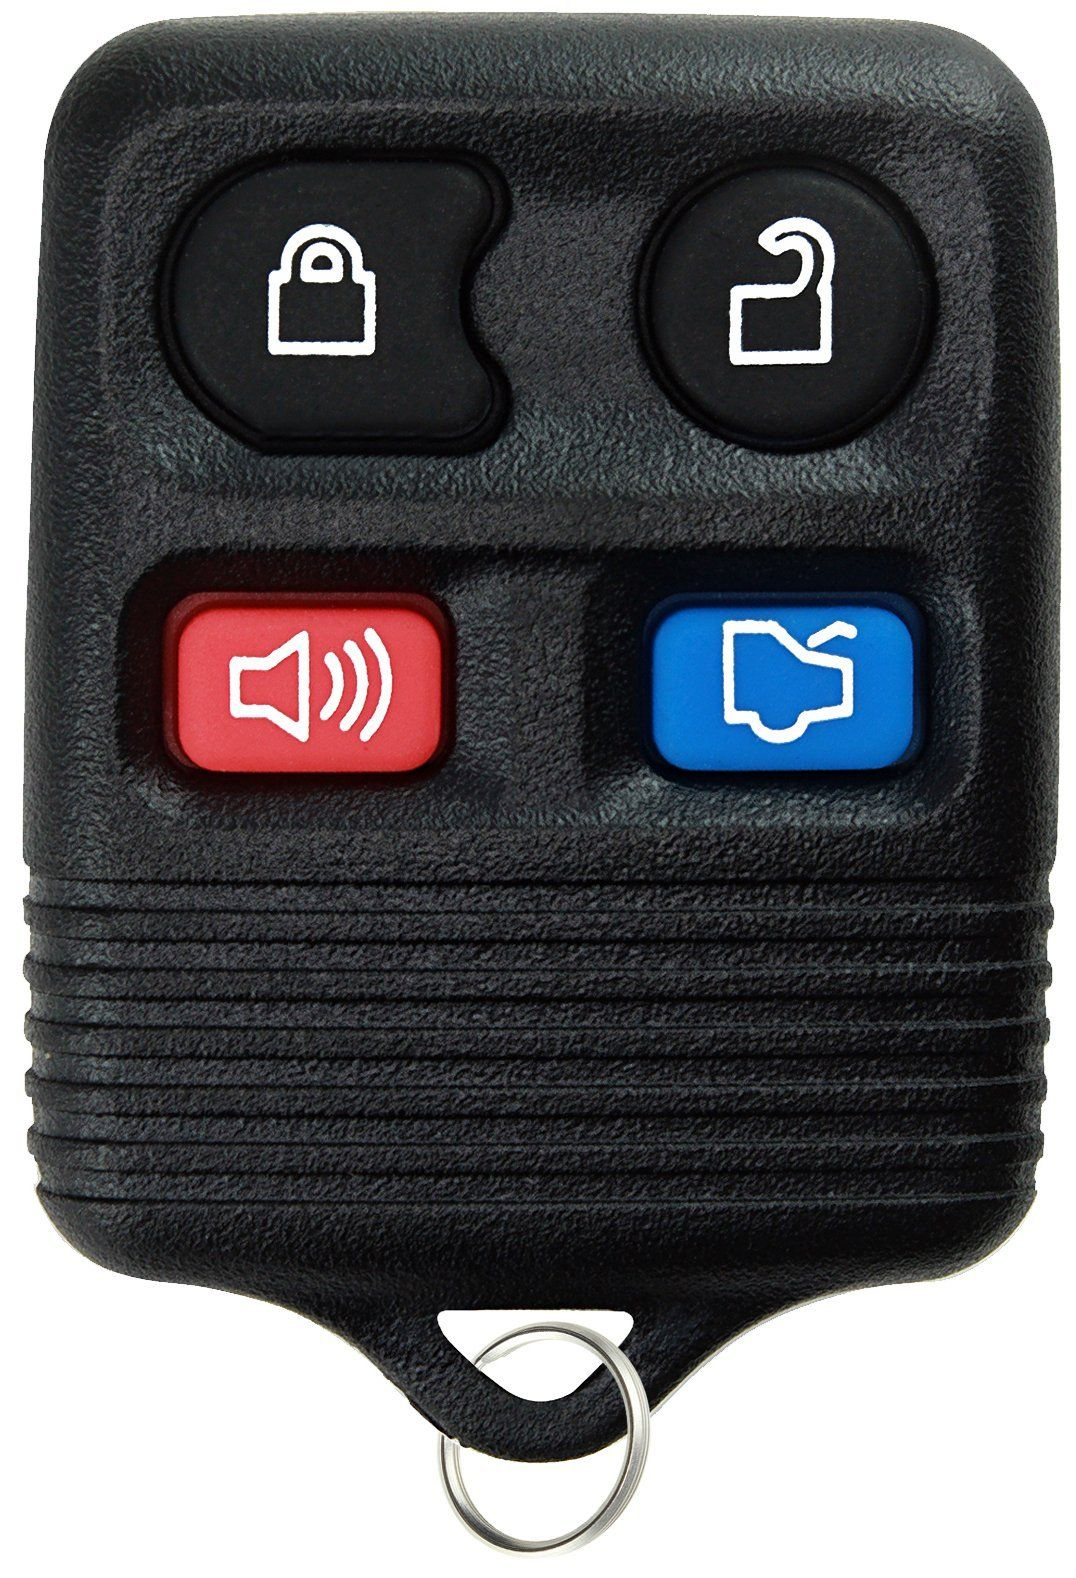 Keylessoption Replacement Keyless Entry Remote Control Car Key Fob Black Remote Control Cars Car Key Fob Lincoln Town Car